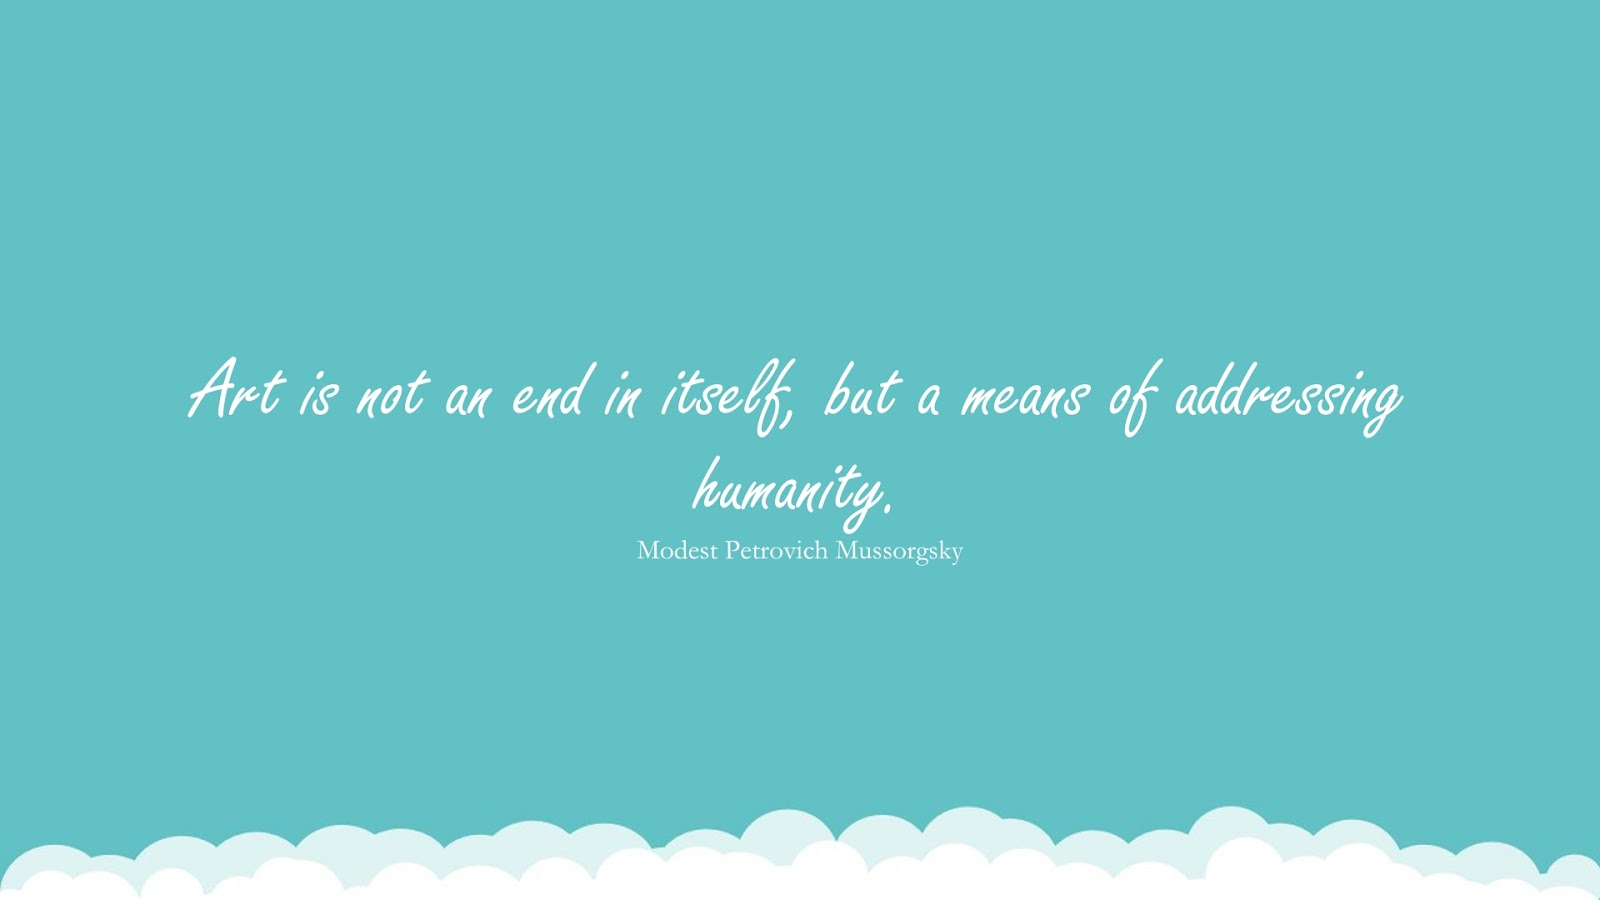 Art is not an end in itself, but a means of addressing humanity. (Modest Petrovich Mussorgsky);  #HumanityQuotes